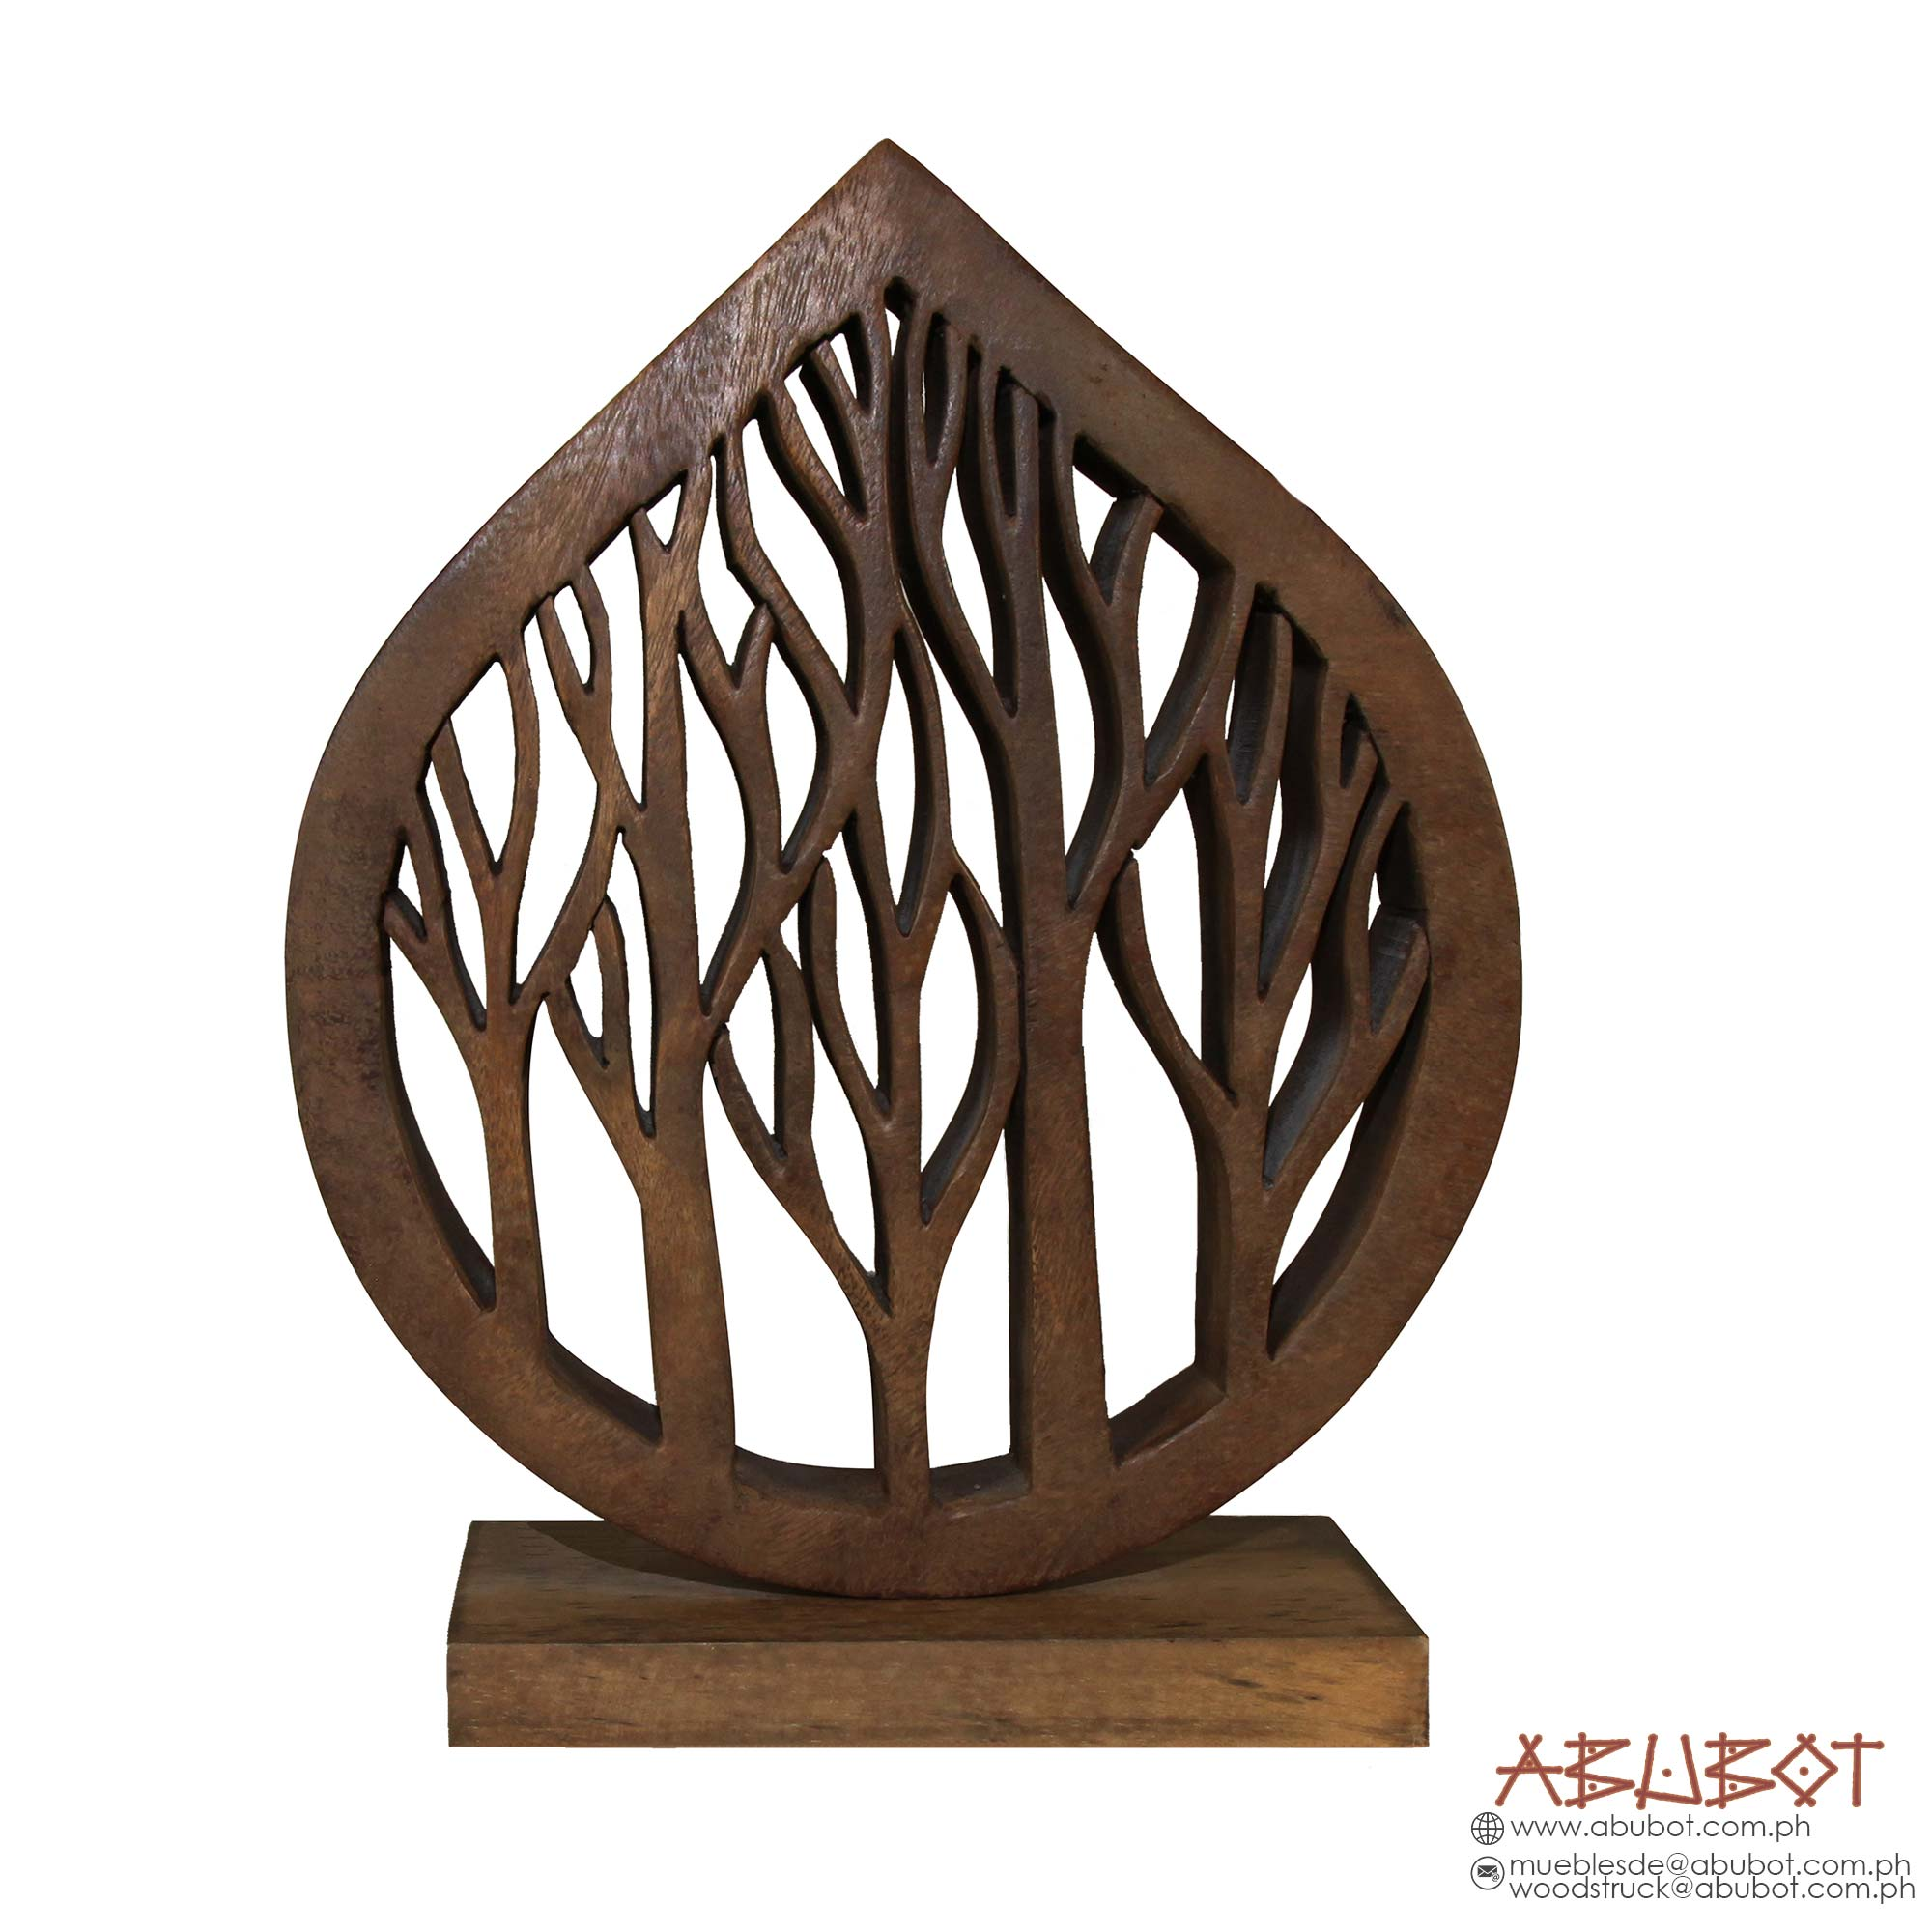 PAT 406 : WOODEN SCULPTURE ON BASE